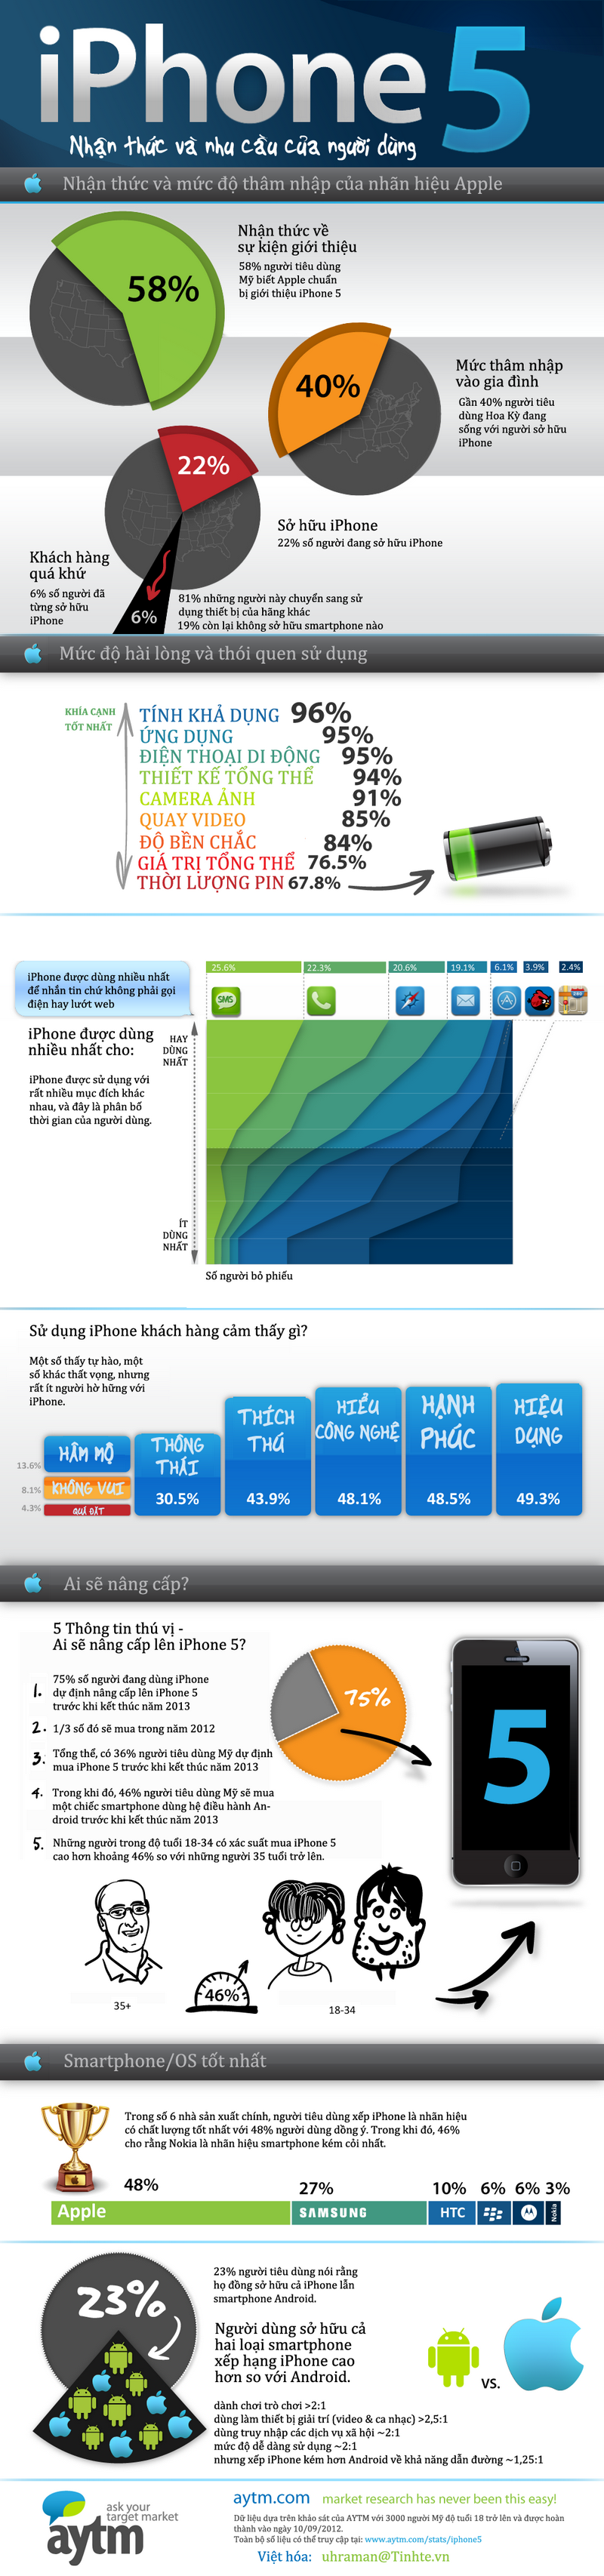 iPhone_5_infographic - final-res.